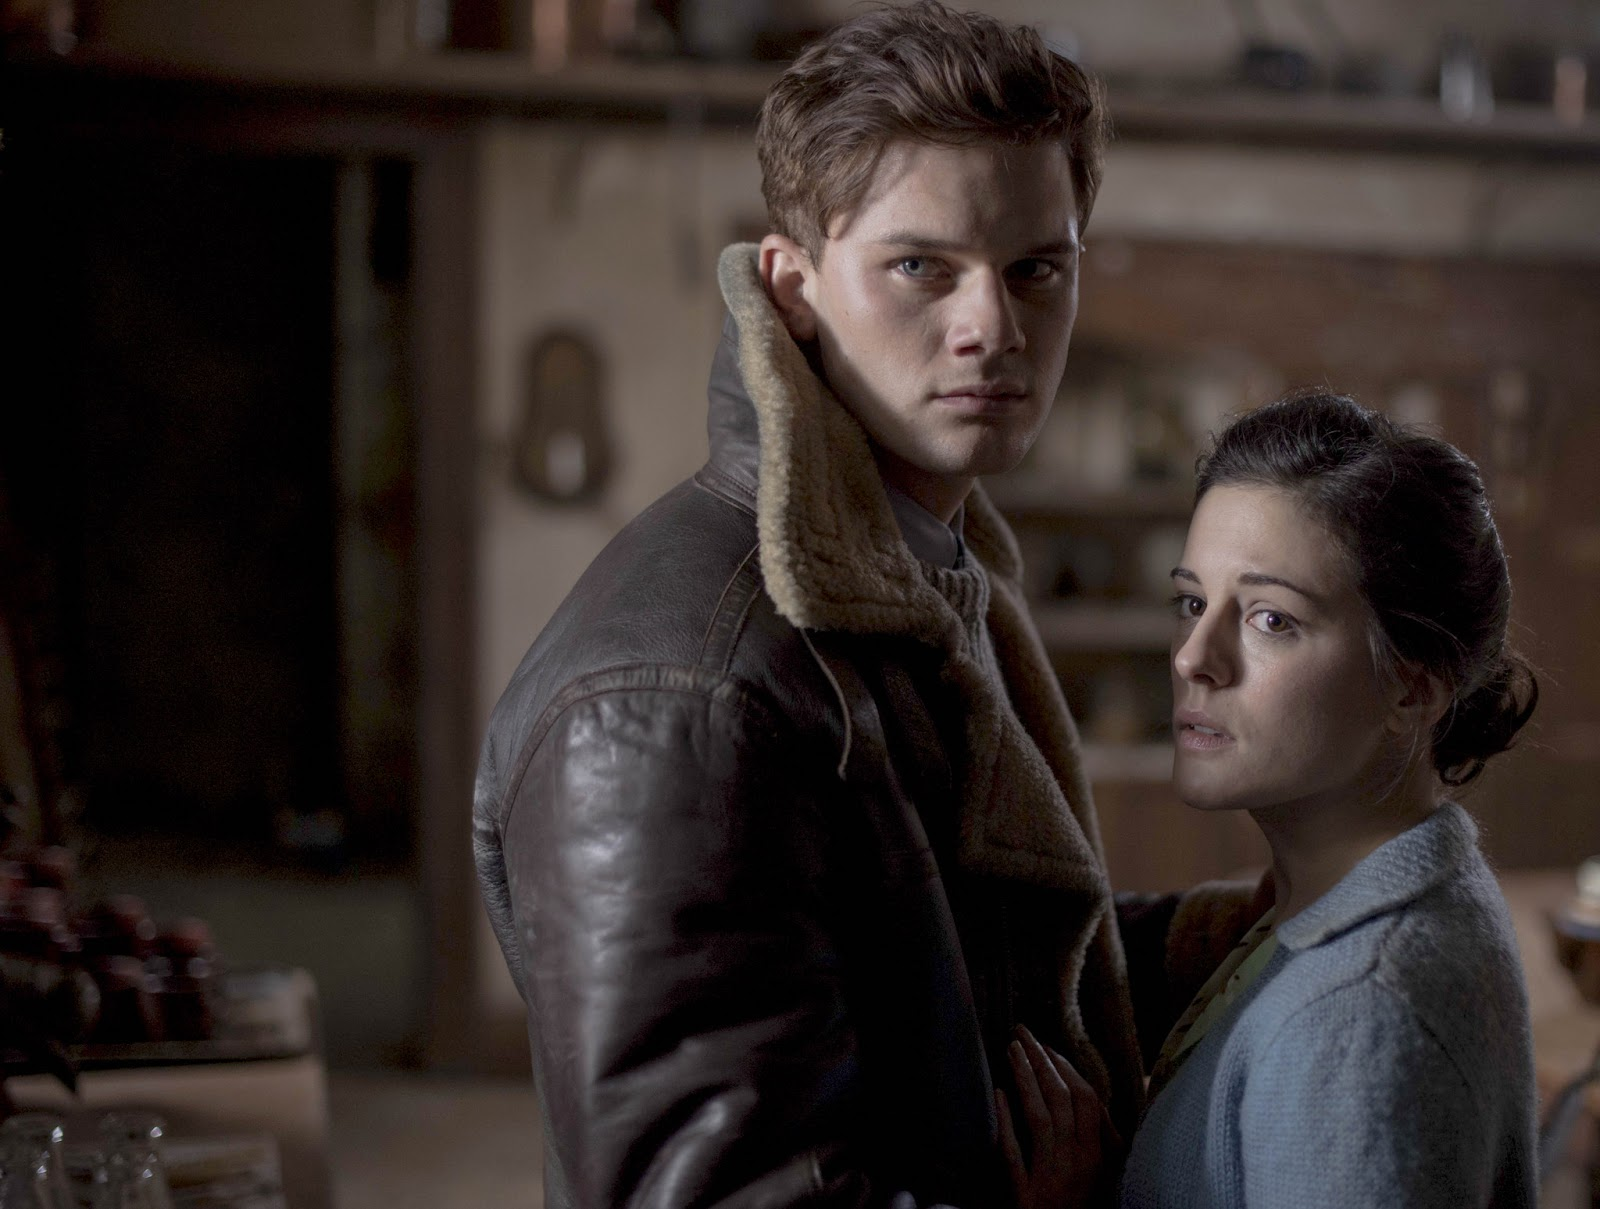 The Woman in Black Angel of Death Jeremy Irvine Phoebe Fox